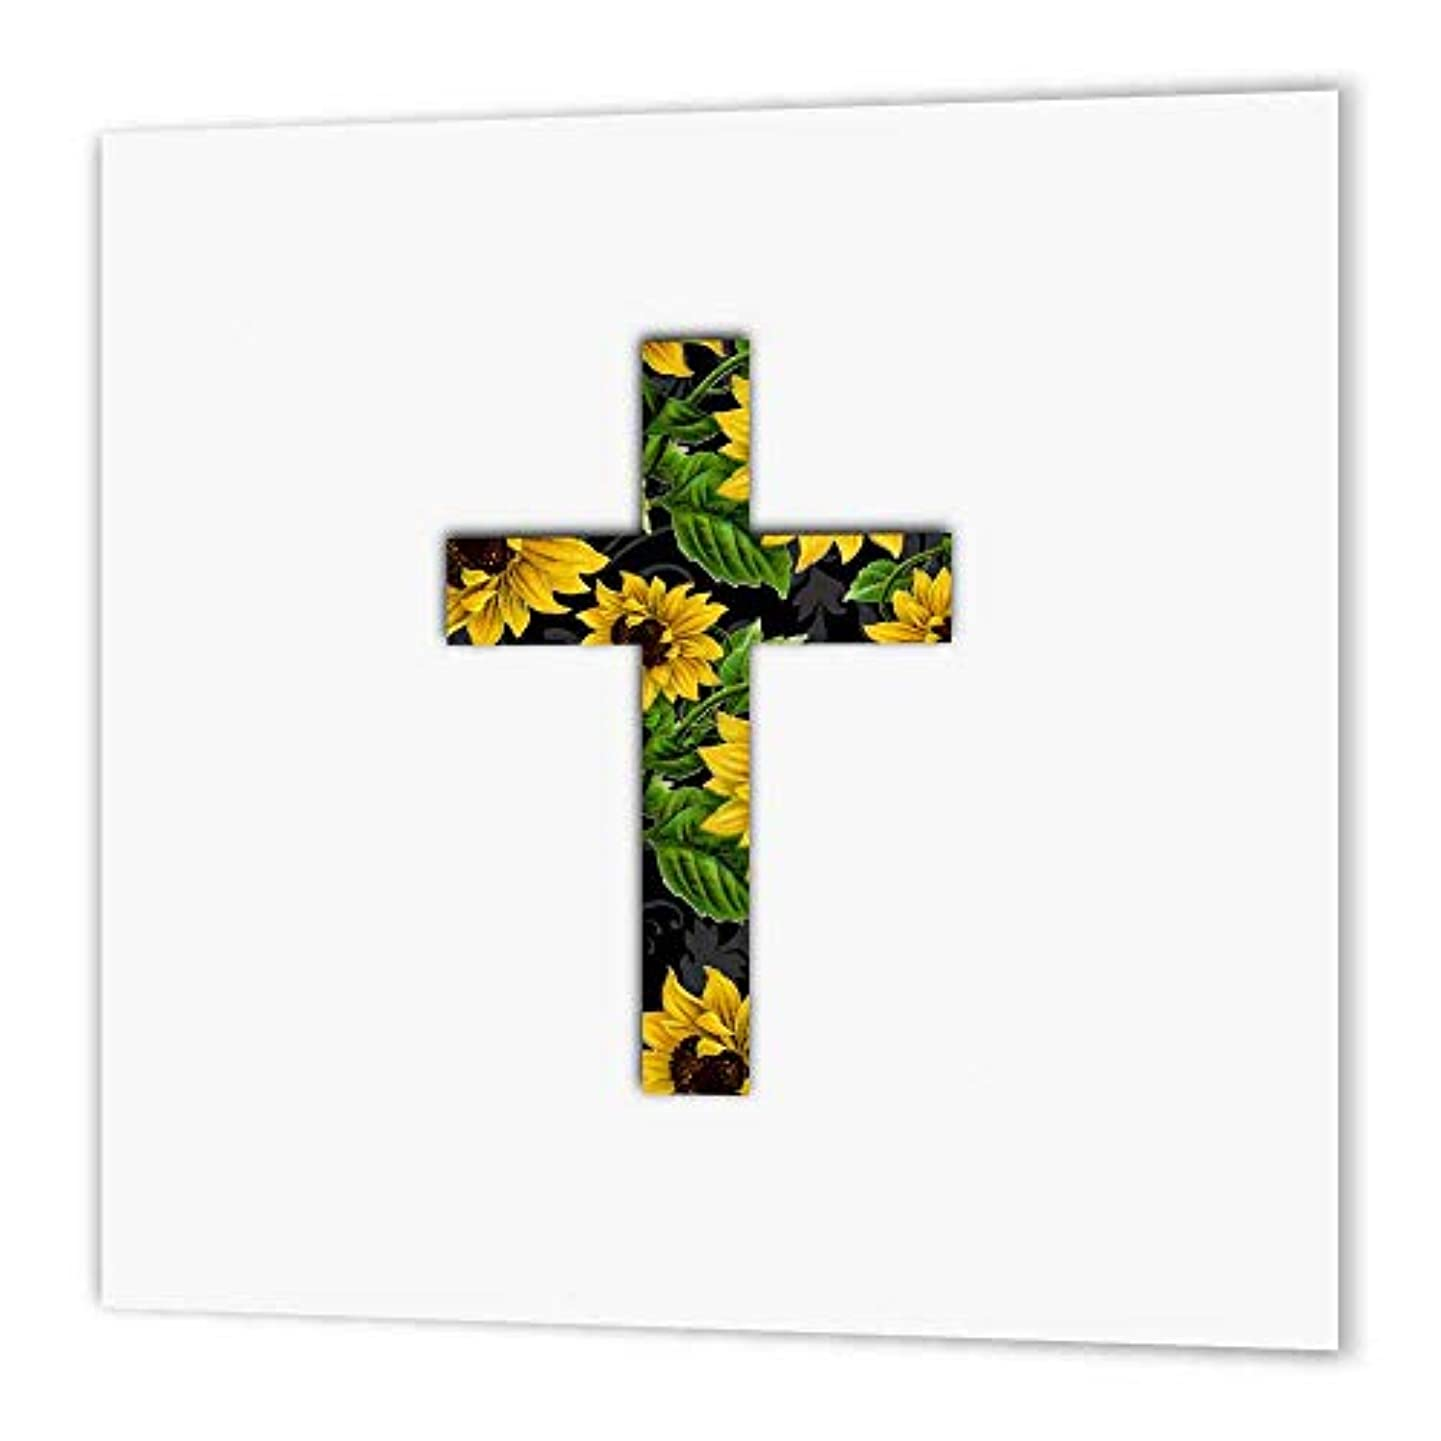 3dRose ht_185475_2 Sunflower Pattern Christian Cross Black and Yellow Floral Crucifix Iron on Heat Transfer, 6 by 6-Inch, for White Material